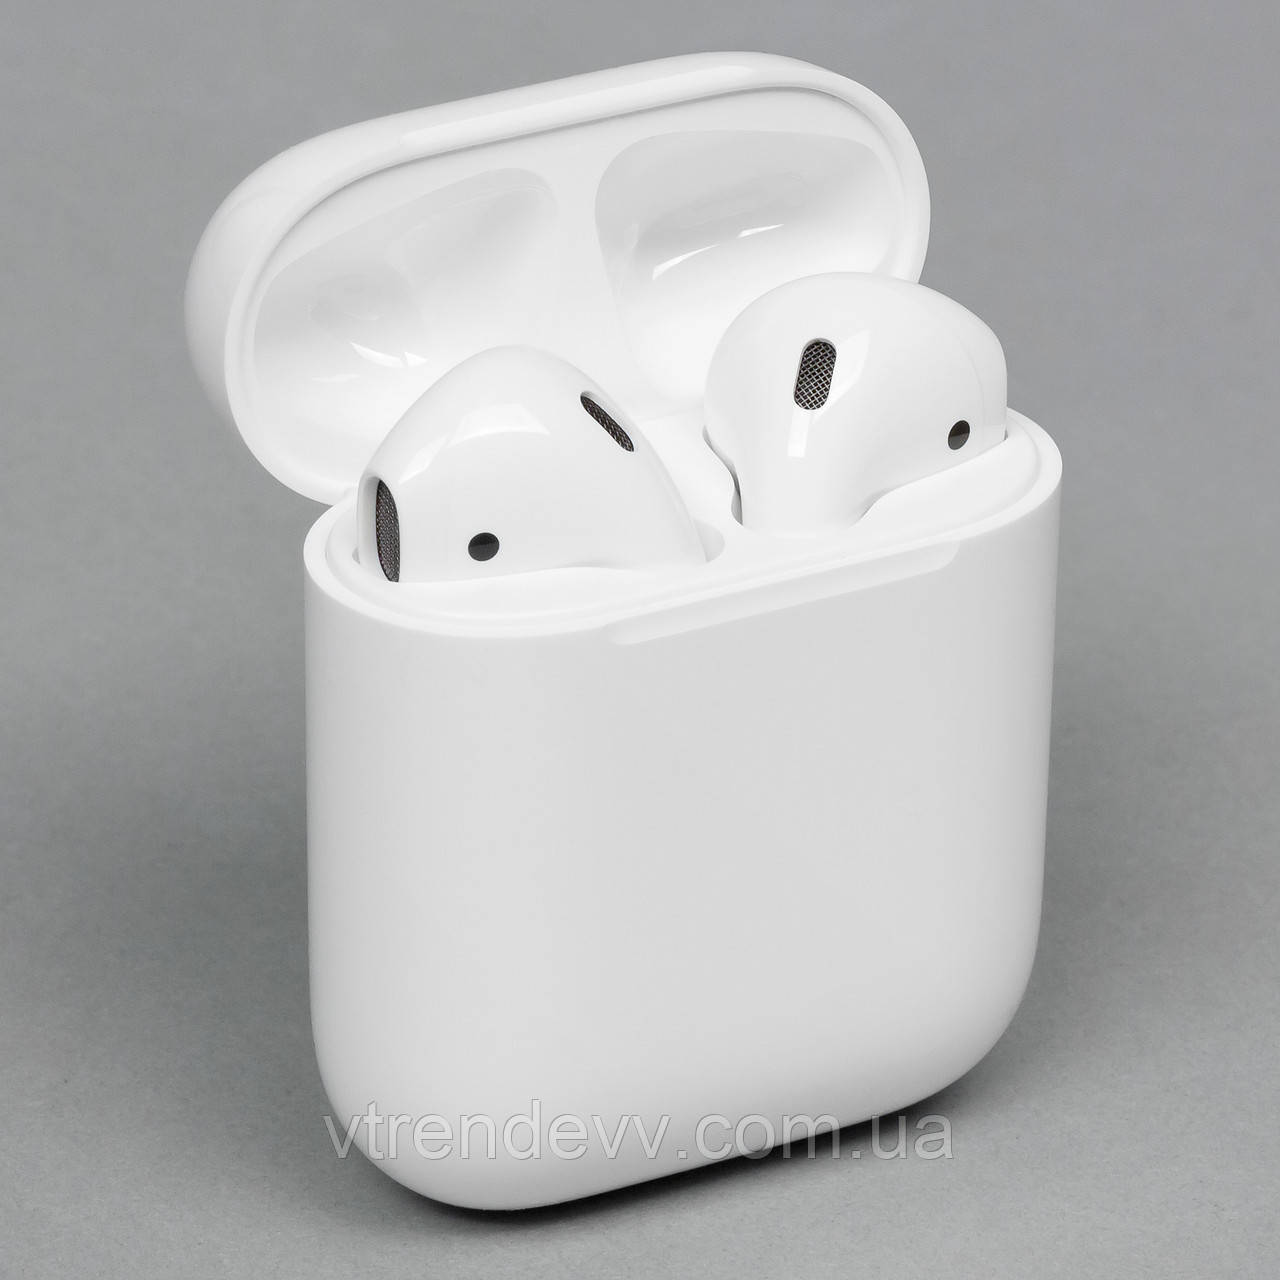 Наушники IFans AirPods